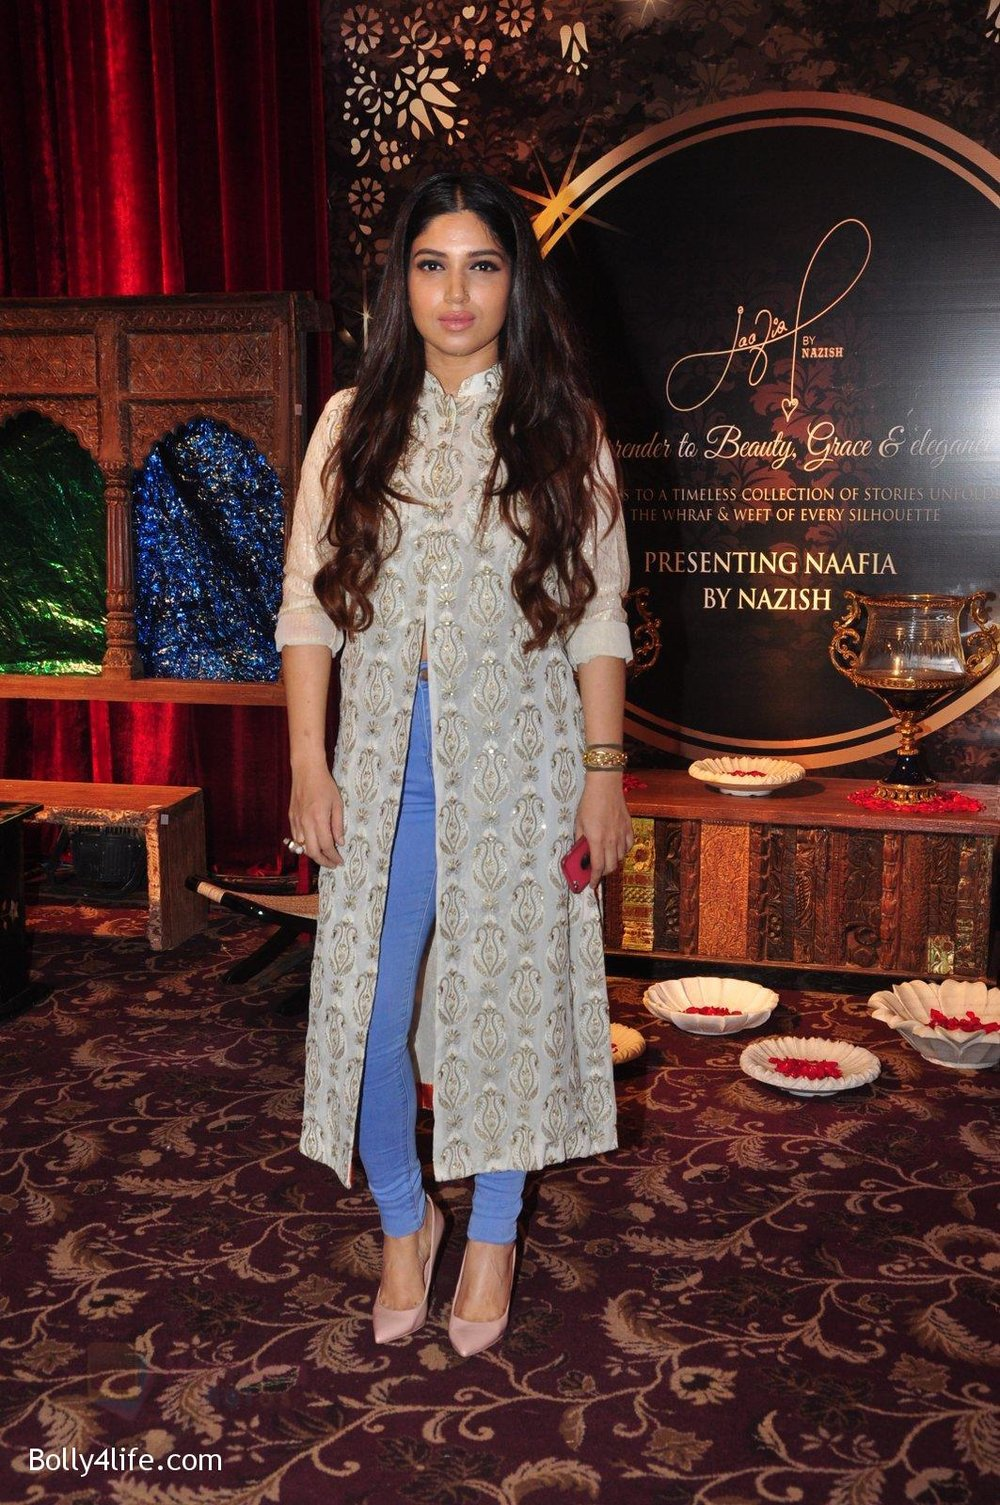 Bhumi-Pednekar-at-Naafia-Naazish-exhibition-on-1st-Oct-2016-35.jpg